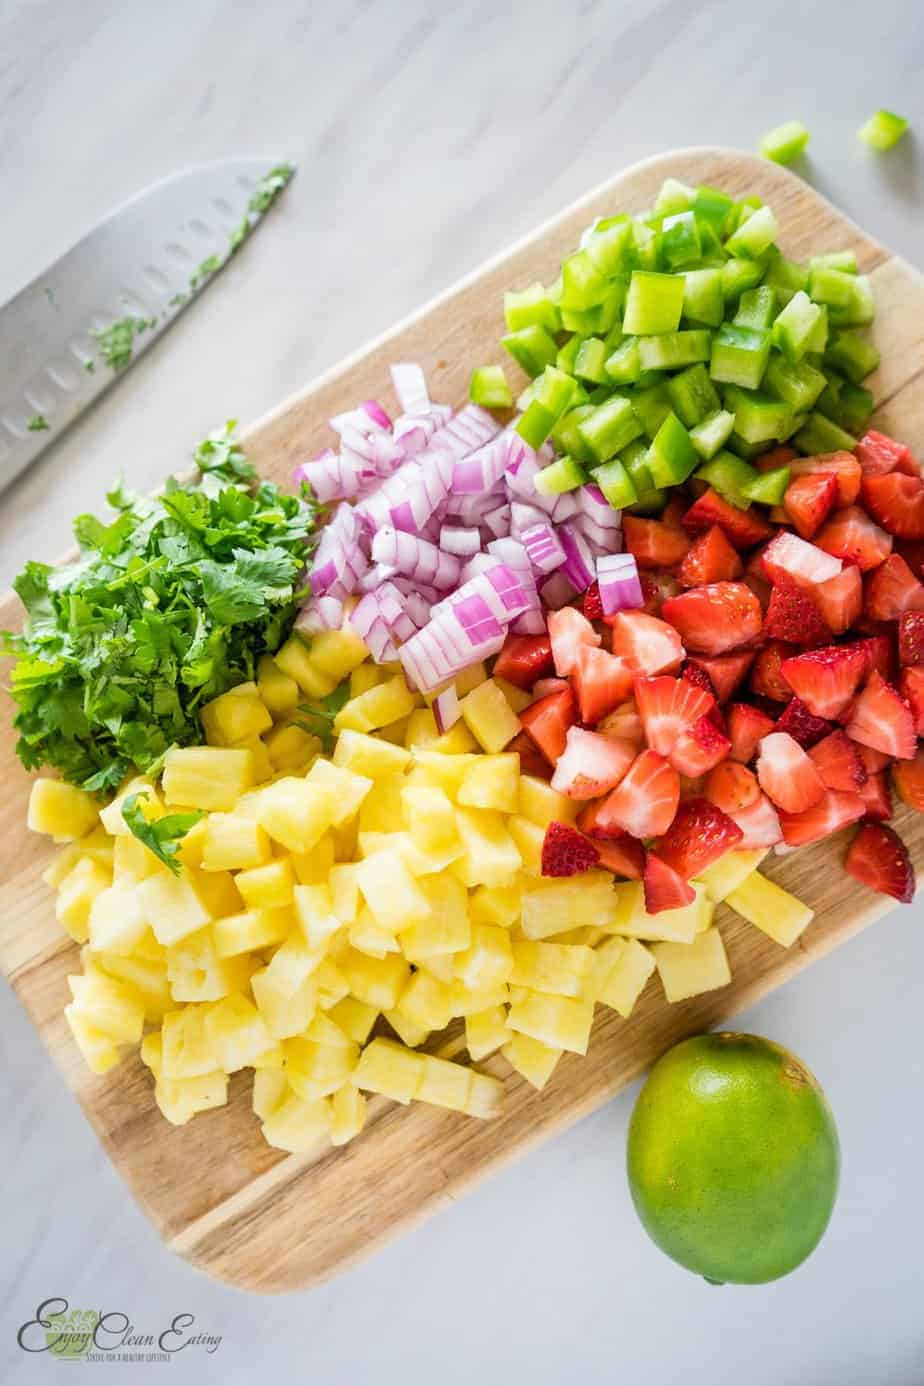 diced fruits and vegetables to make strawberry pineapple salsa